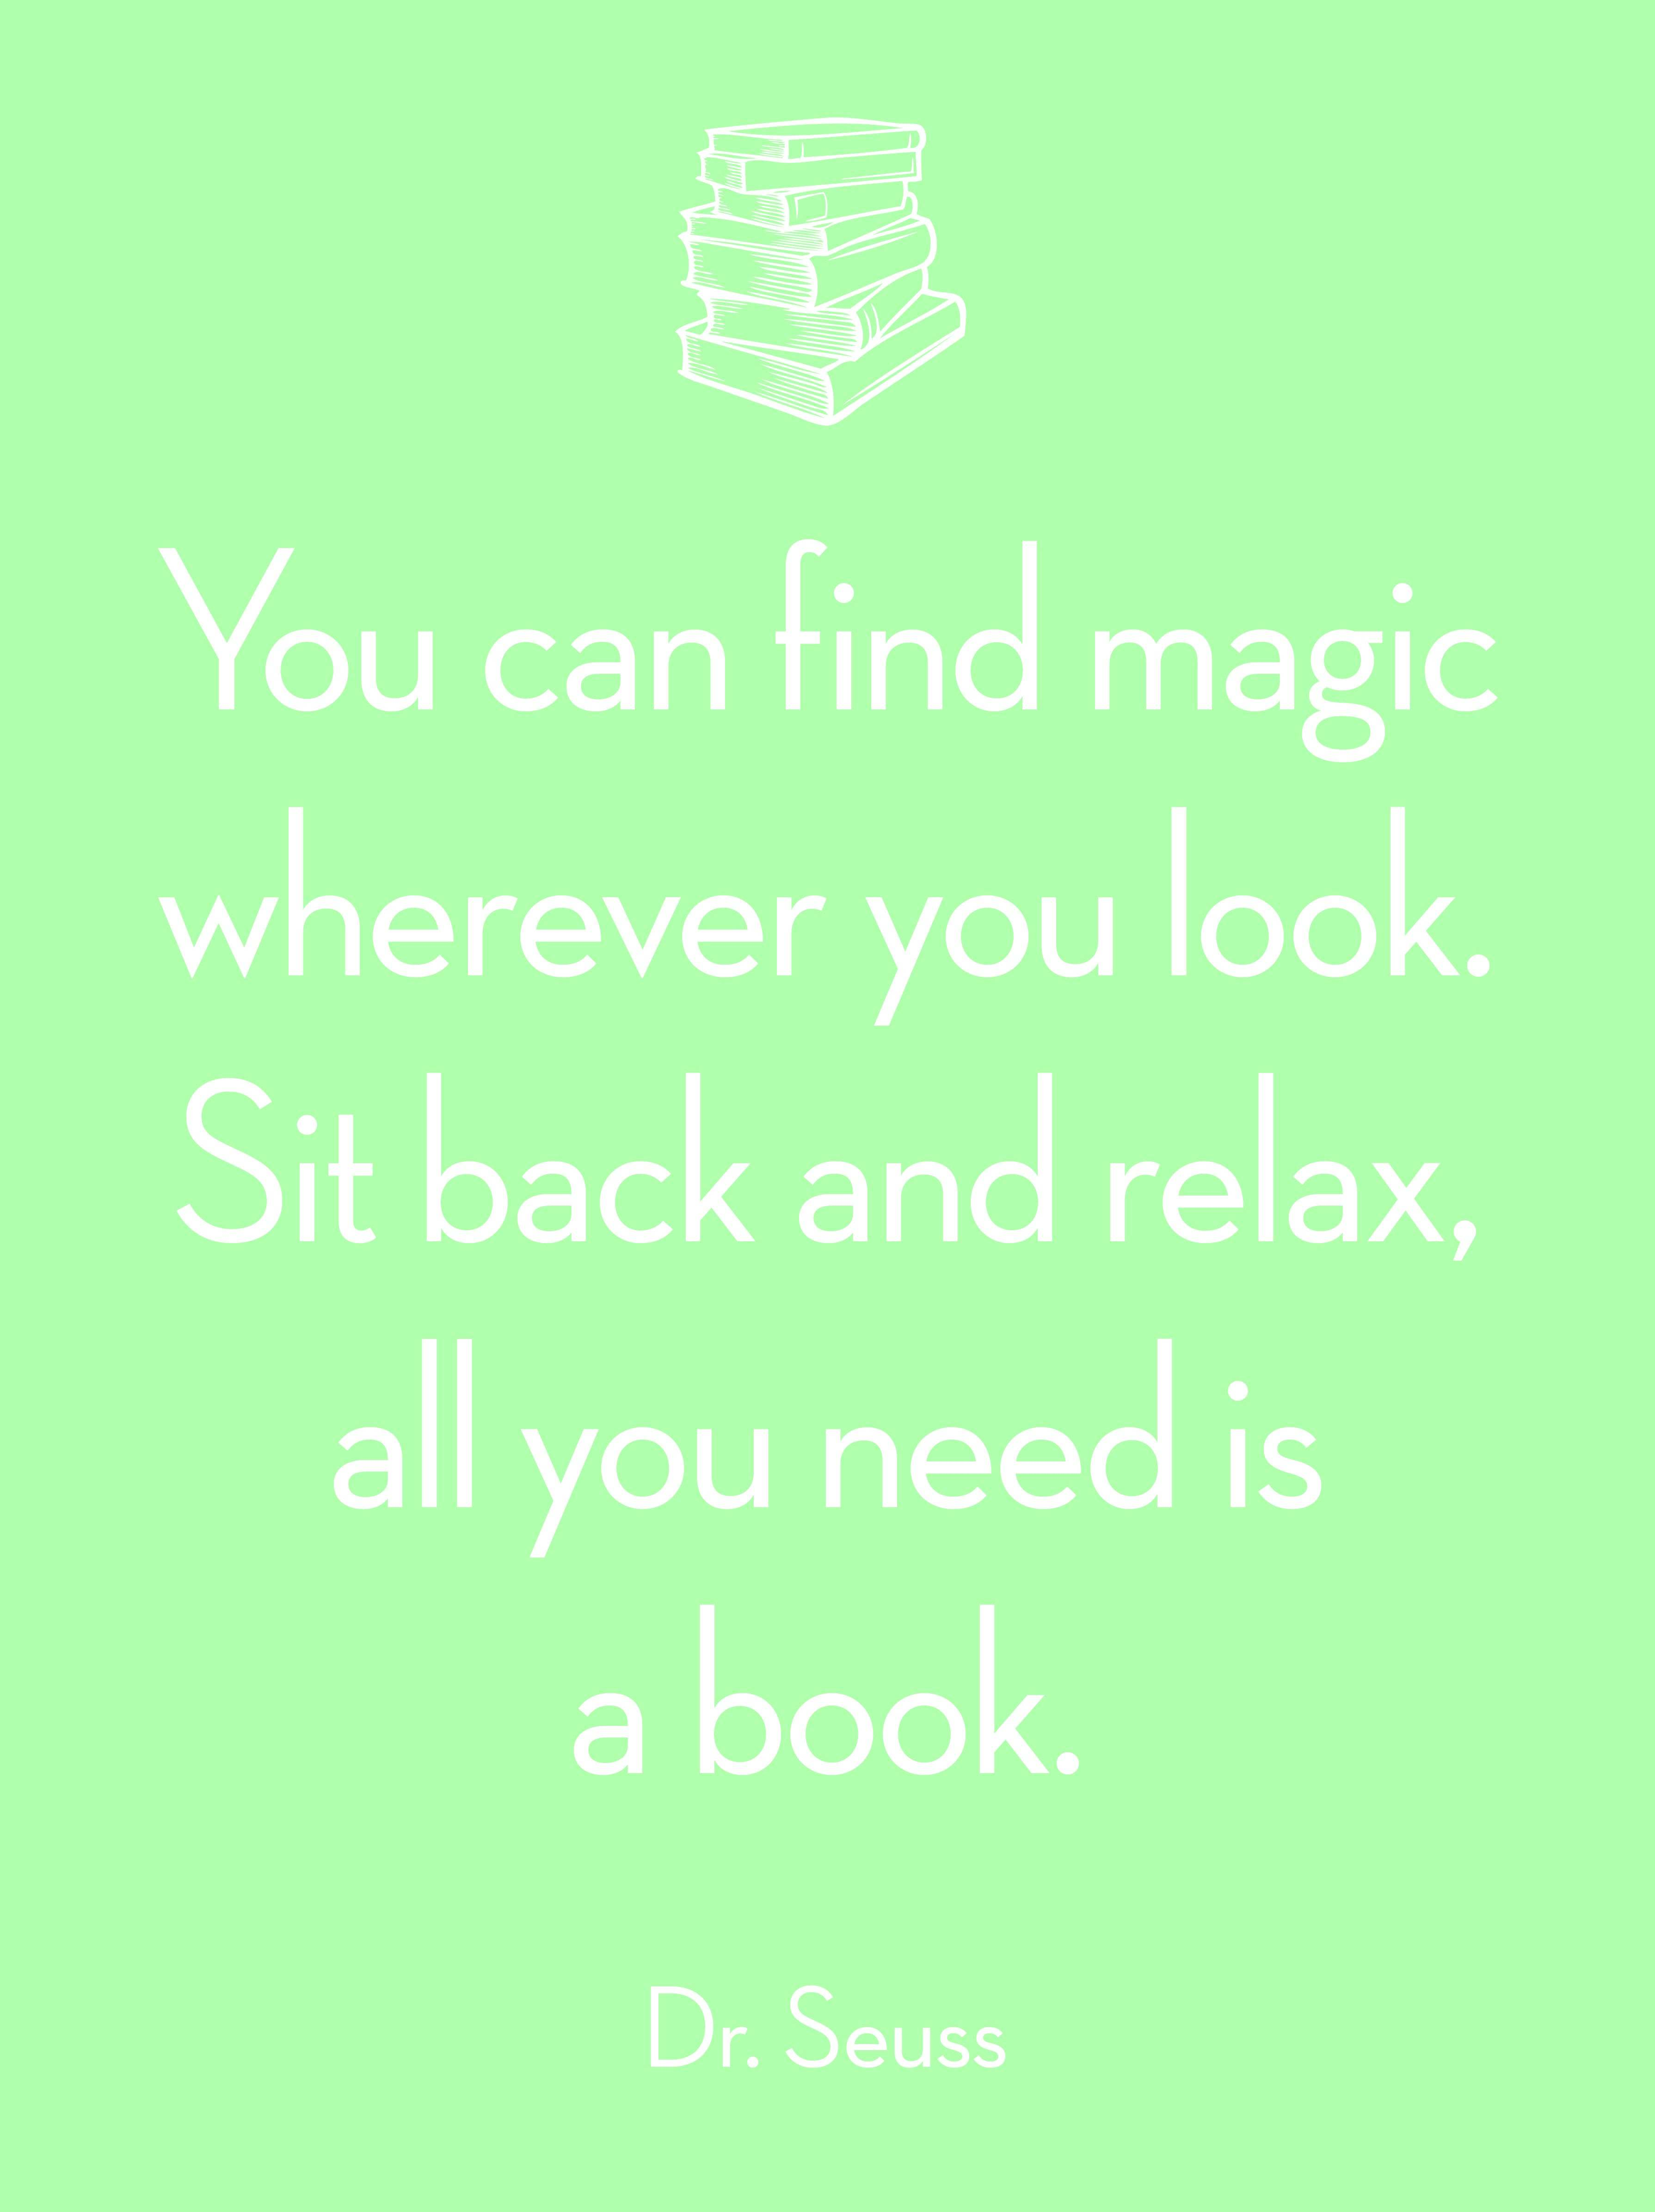 dr seuss Quote You can find magic wherever you look Sit back